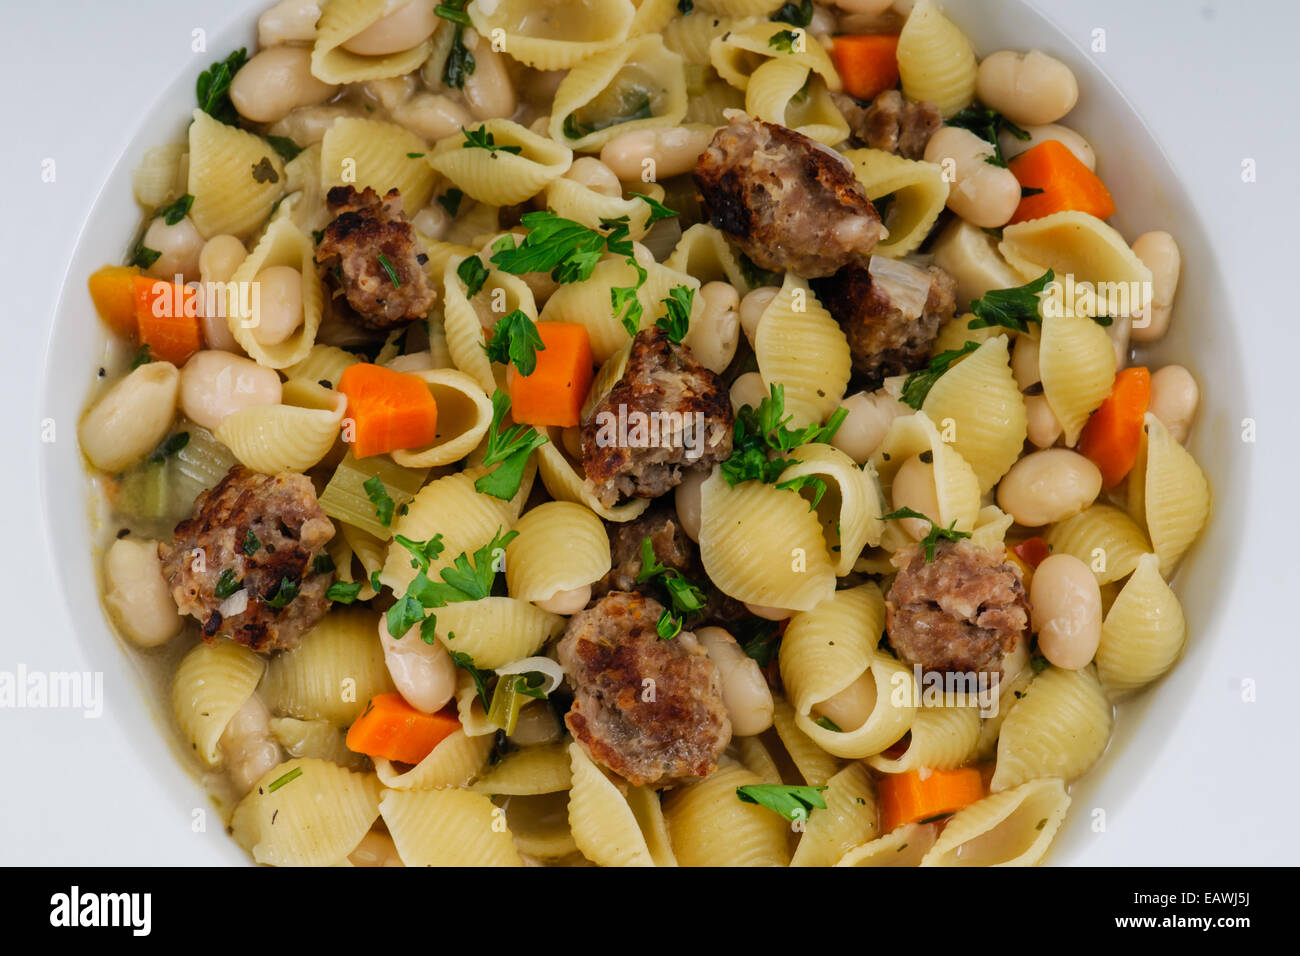 Hearty Dinner Of Italian Sausage, White Bean And Shell Pasta Soup